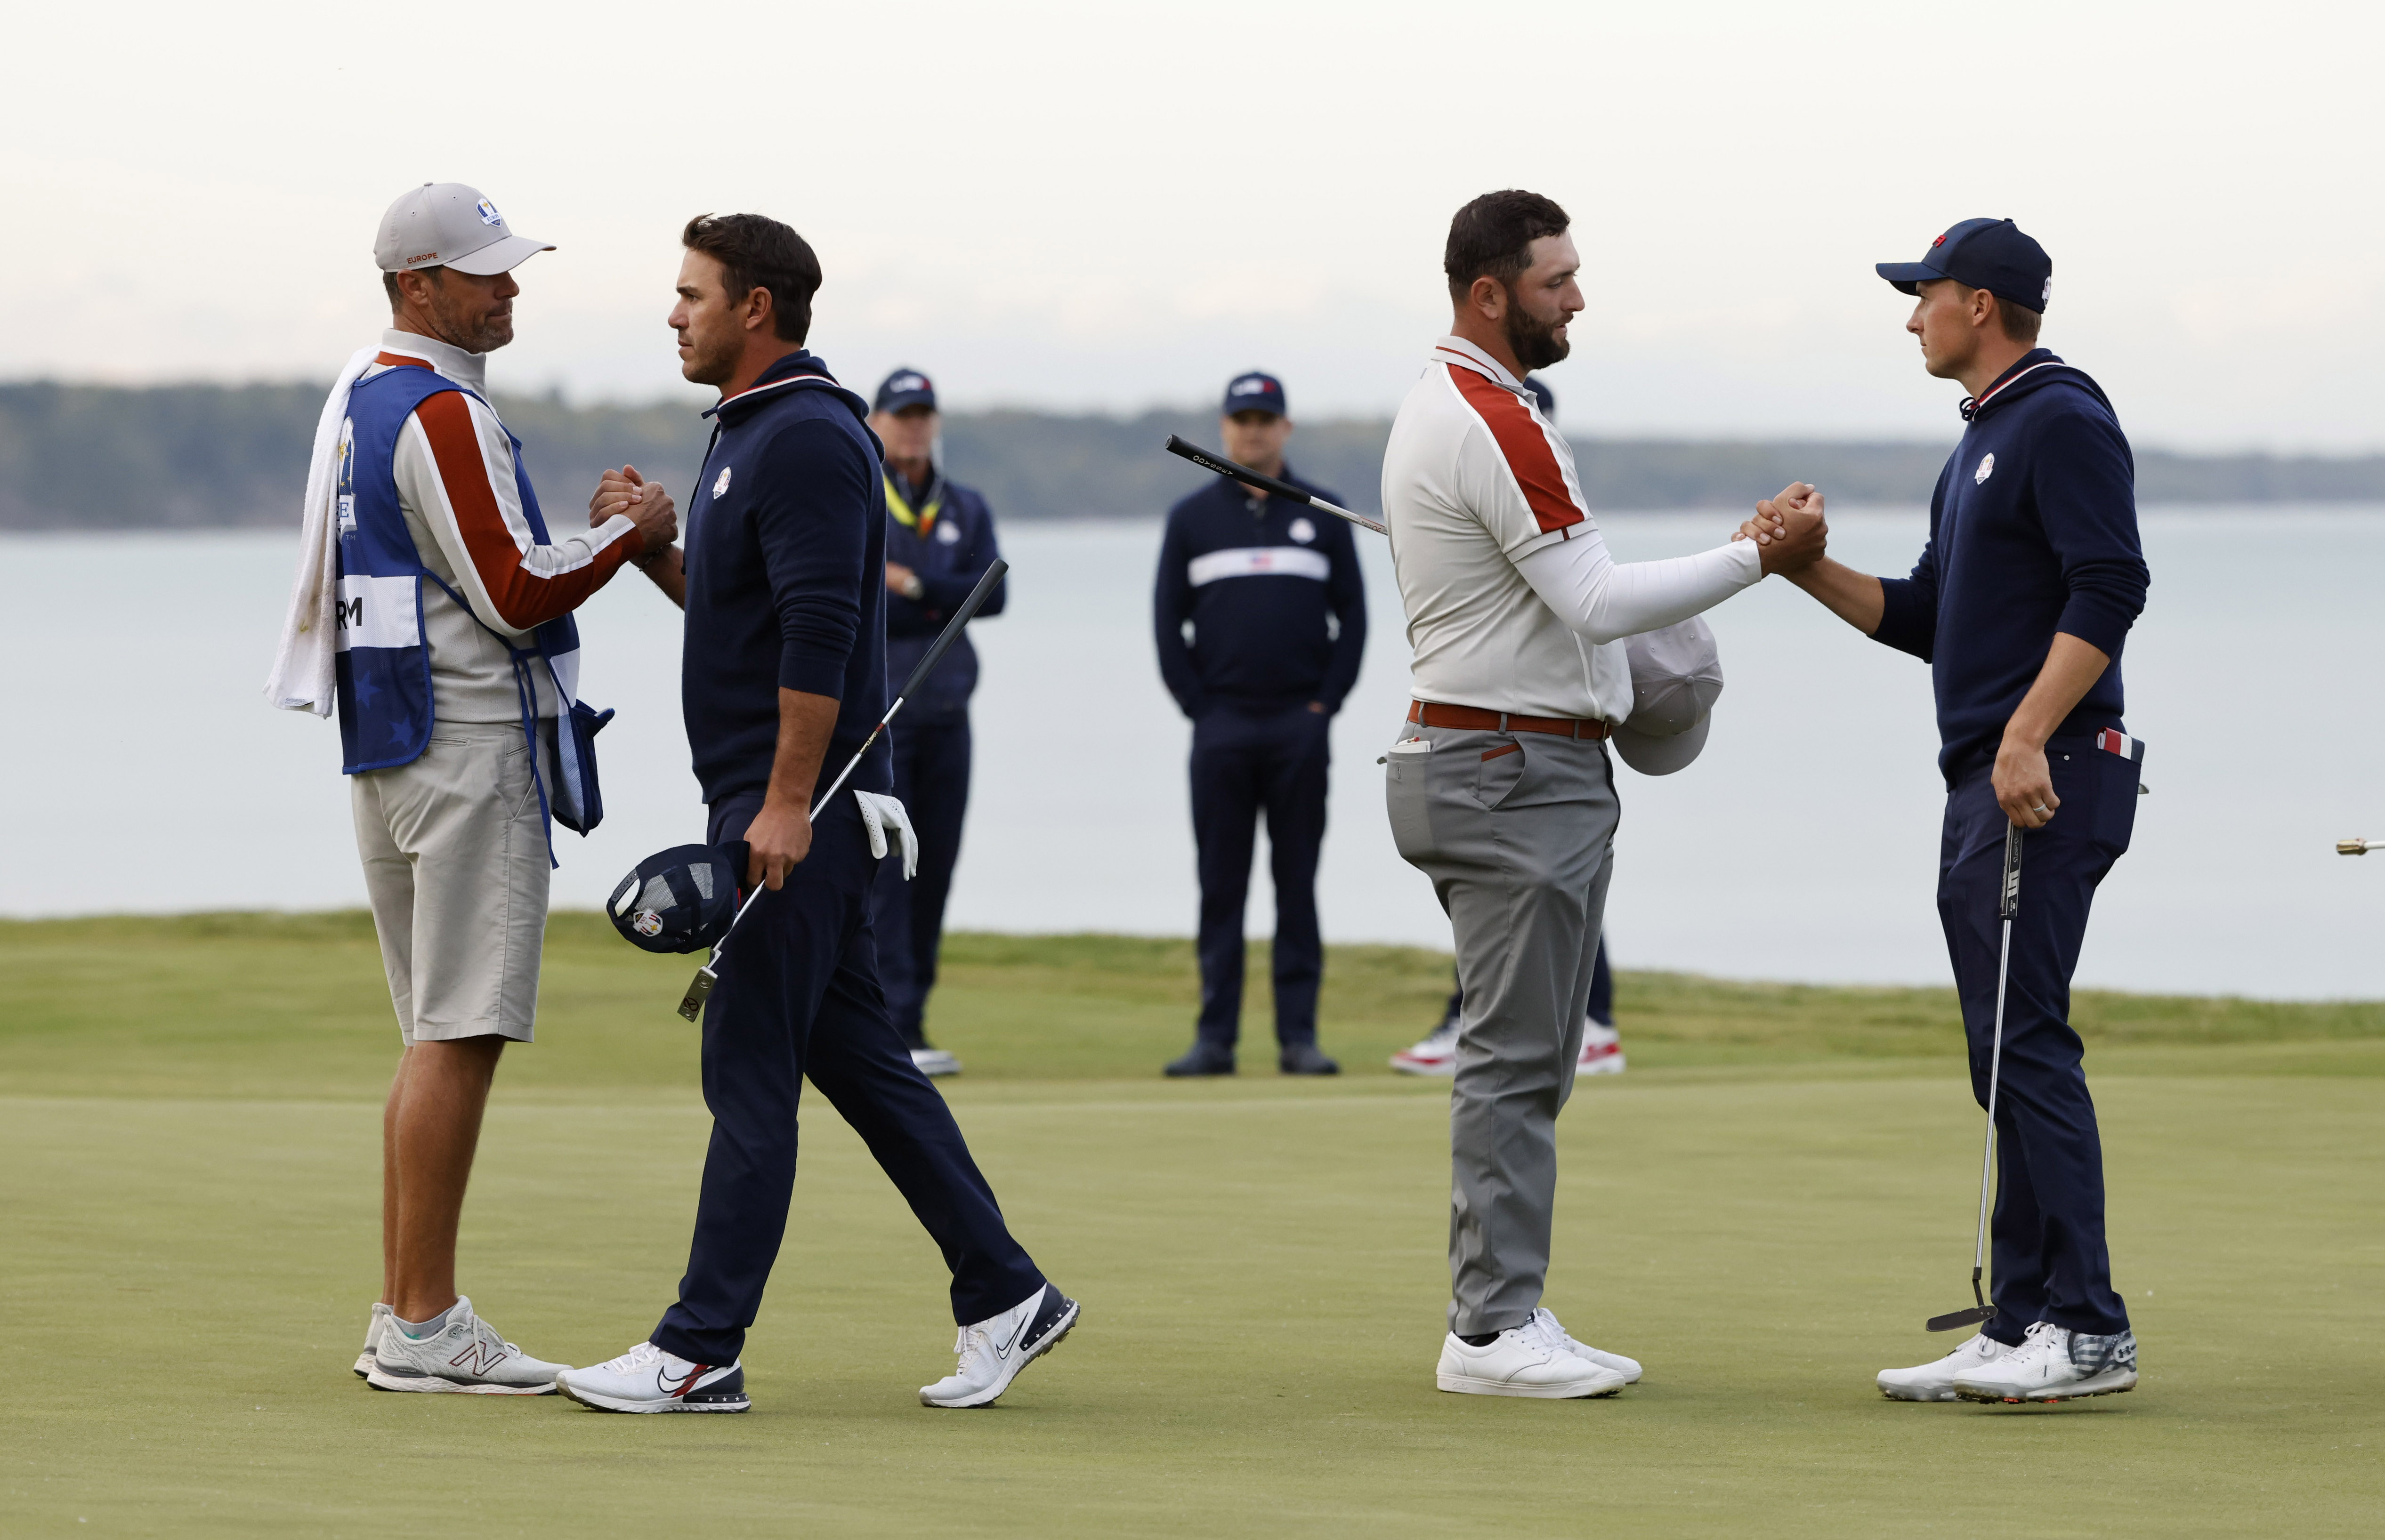 Golf - The 2020 Ryder Cup - Whistling Straits, Sheboygan, Wisconsin, U.S. - September 25, 2021 Team Europe's Jon Rahm shakes hands with Team USA's Jordan Spieth on the 17th green as Team USA's Brooks Koepka looks on after Team Europe win the match during the Four-balls REUTERS/Jonathan Ernst